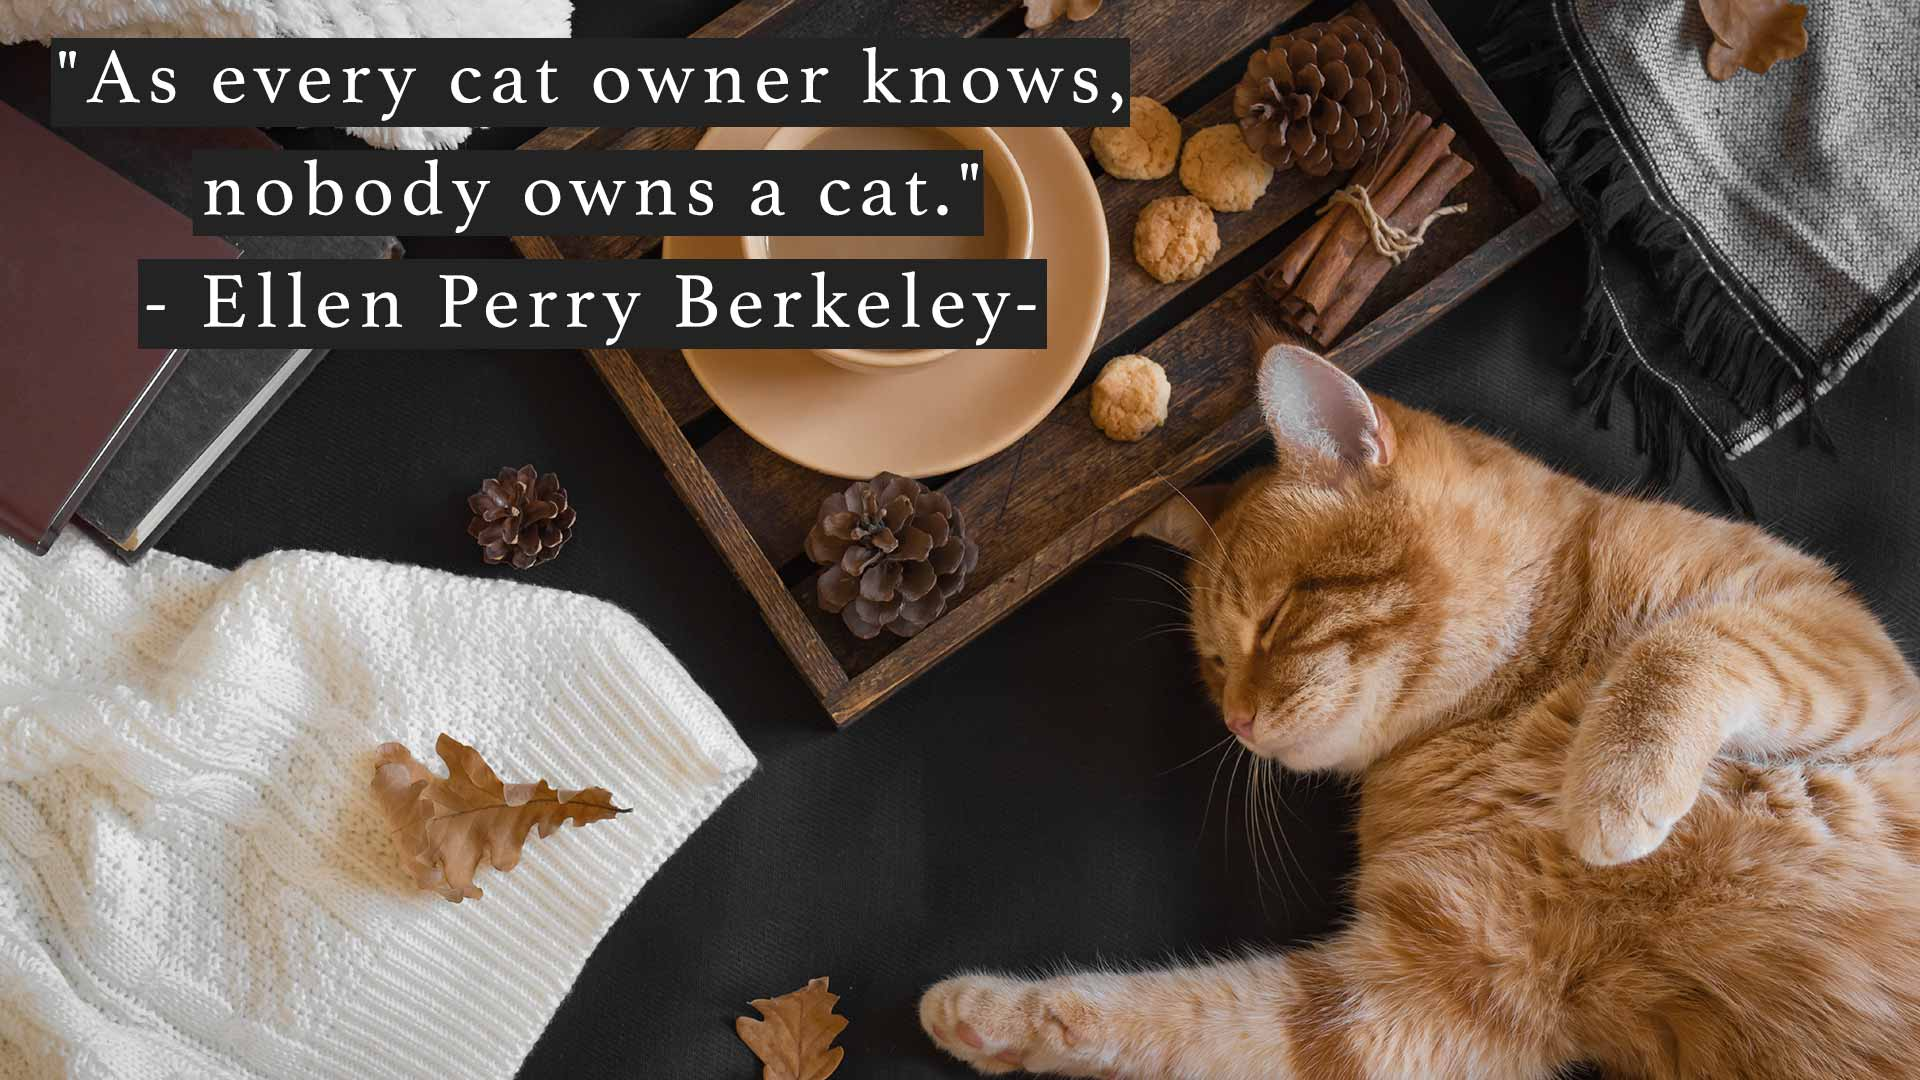 As every cat owner knows, nobody owns a cat